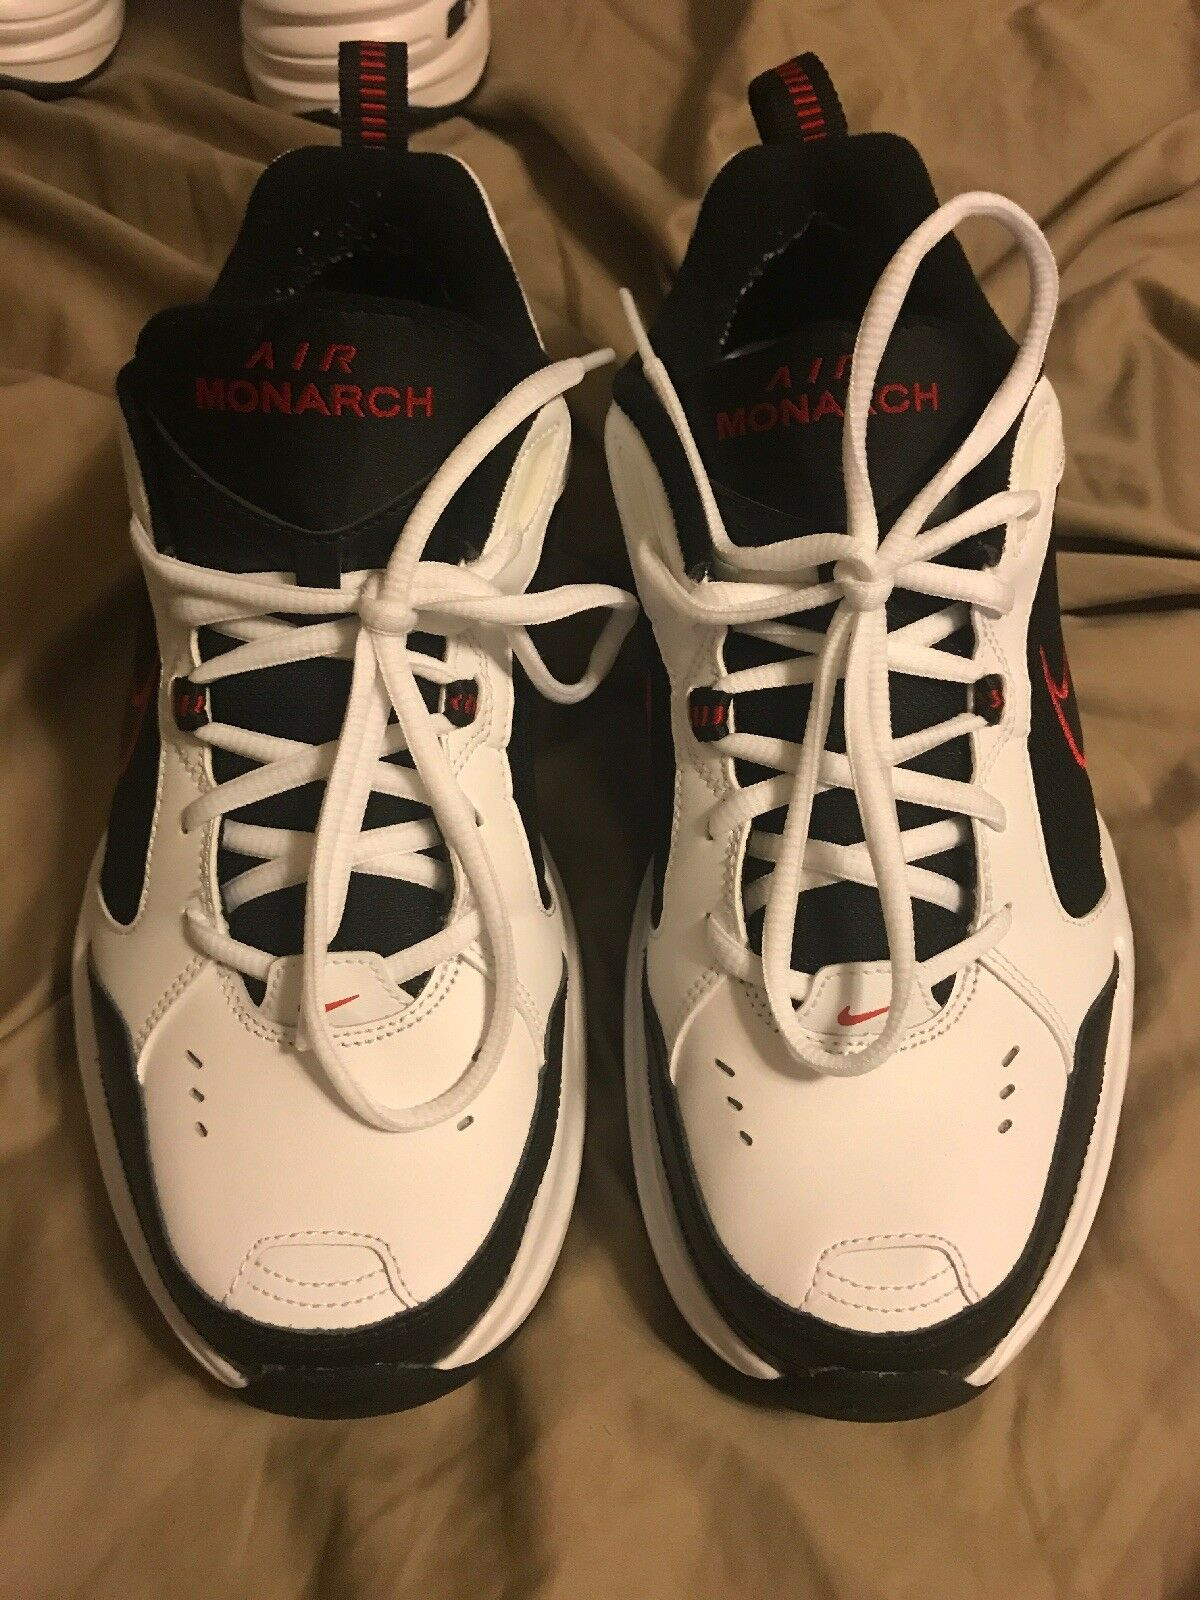 NIKE AIR MONARCH 4 MEDIUM WIDTH WHITE BLACK RED 415445-101 MENS US SIZES best-selling model of the brand